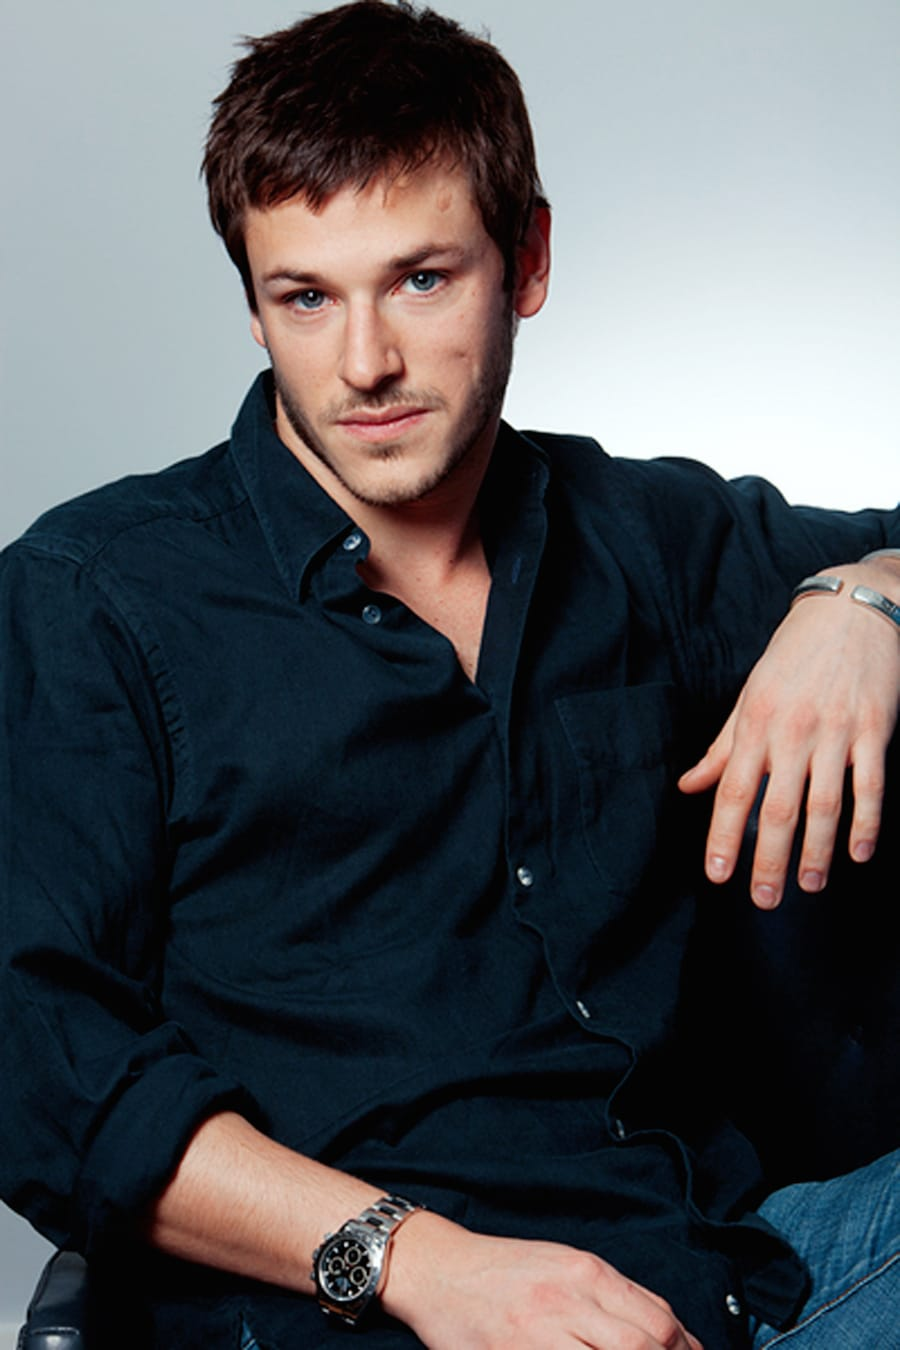 gaspard ulliel girlgaspard ulliel instagram, gaspard ulliel gif, gaspard ulliel chanel, gaspard ulliel tumblr, gaspard ulliel 2017, gaspard ulliel vk, gaspard ulliel son, gaspard ulliel gif hunt, gaspard ulliel height, gaspard ulliel 2016, gaspard ulliel young, gaspard ulliel interview, gaspard ulliel film, gaspard ulliel haircut, gaspard ulliel png, gaspard ulliel who dated who, gaspard ulliel photo, gaspard ulliel fan, gaspard ulliel girl, gaspard ulliel glasses